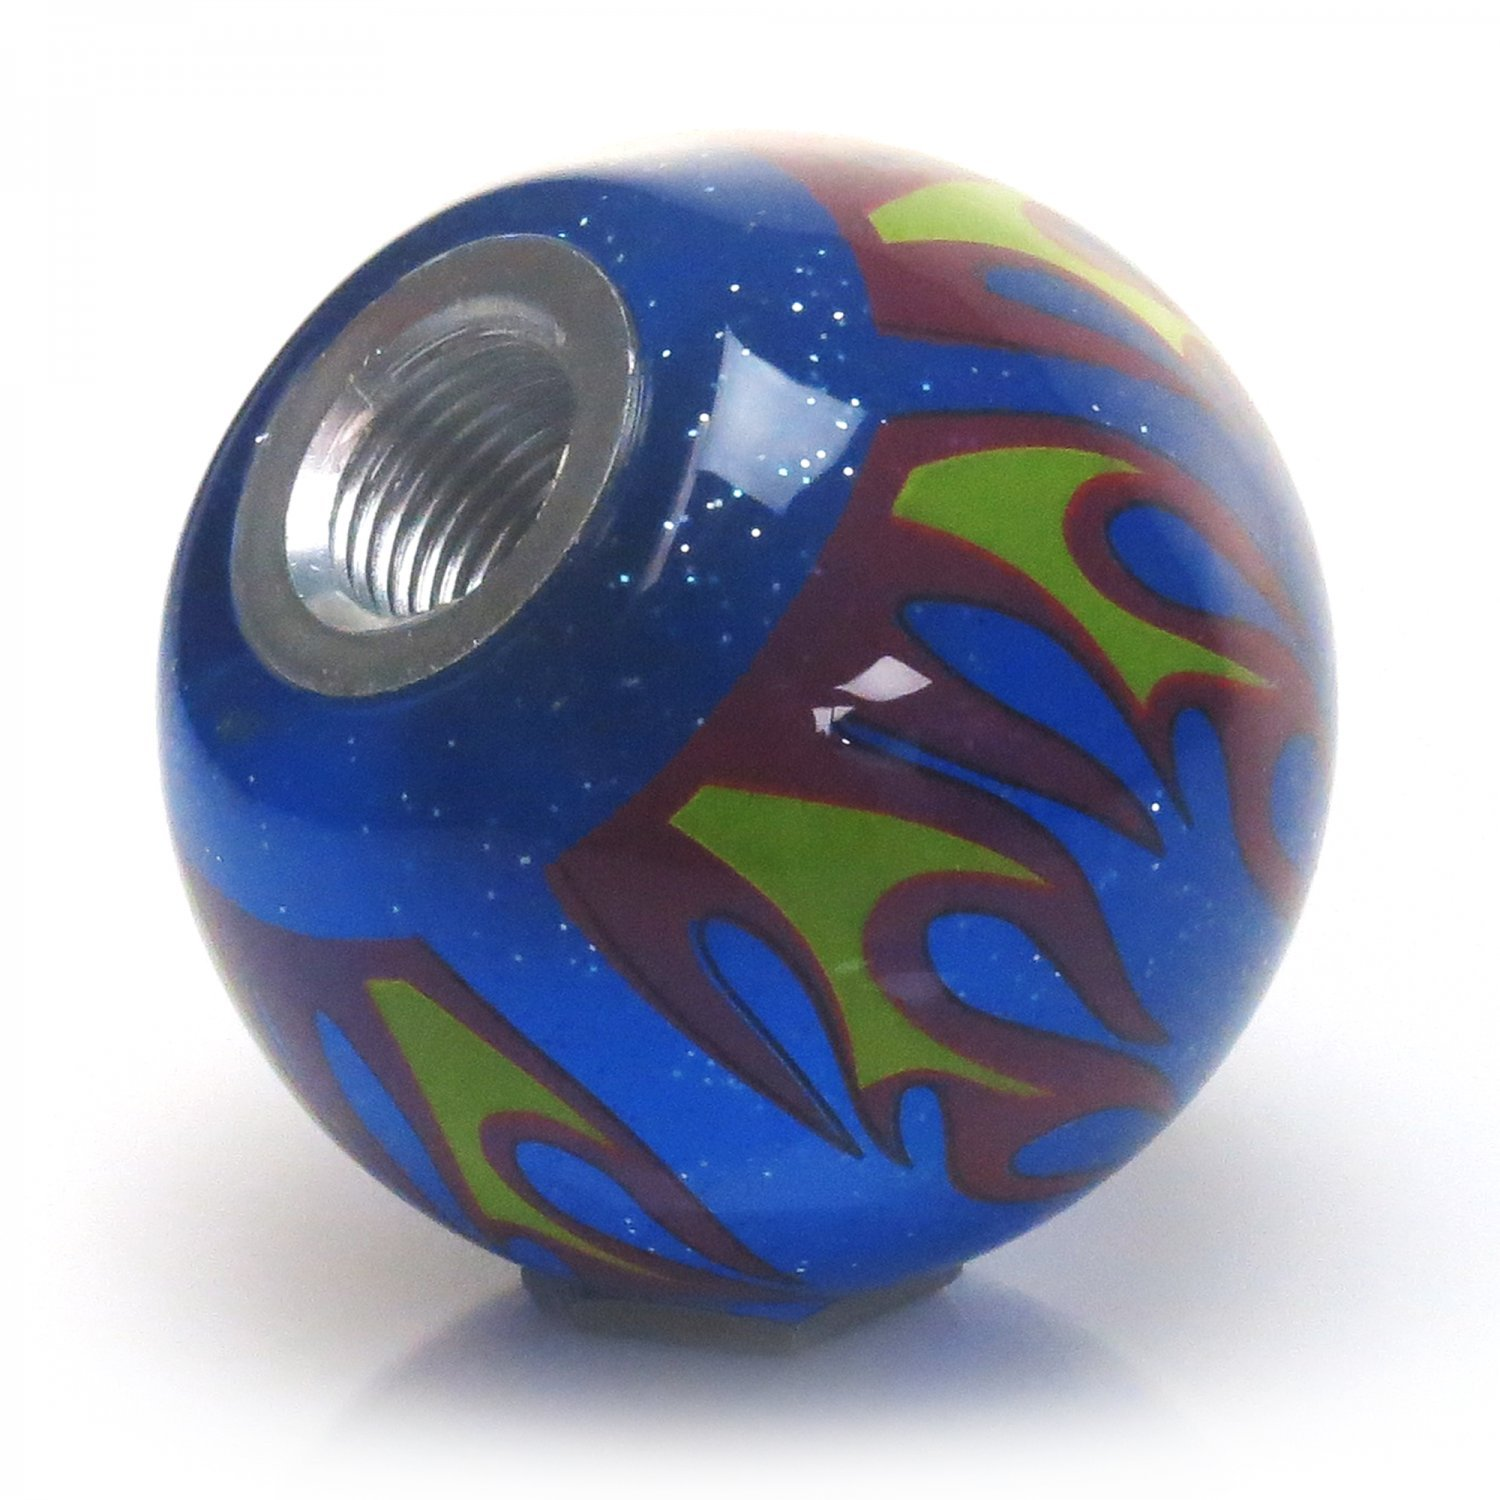 American Shifter 243806 Blue Flame Metal Flake Shift Knob with M16 x 1.5 Insert Pink 5 Speed Shift Pattern - 5RDL